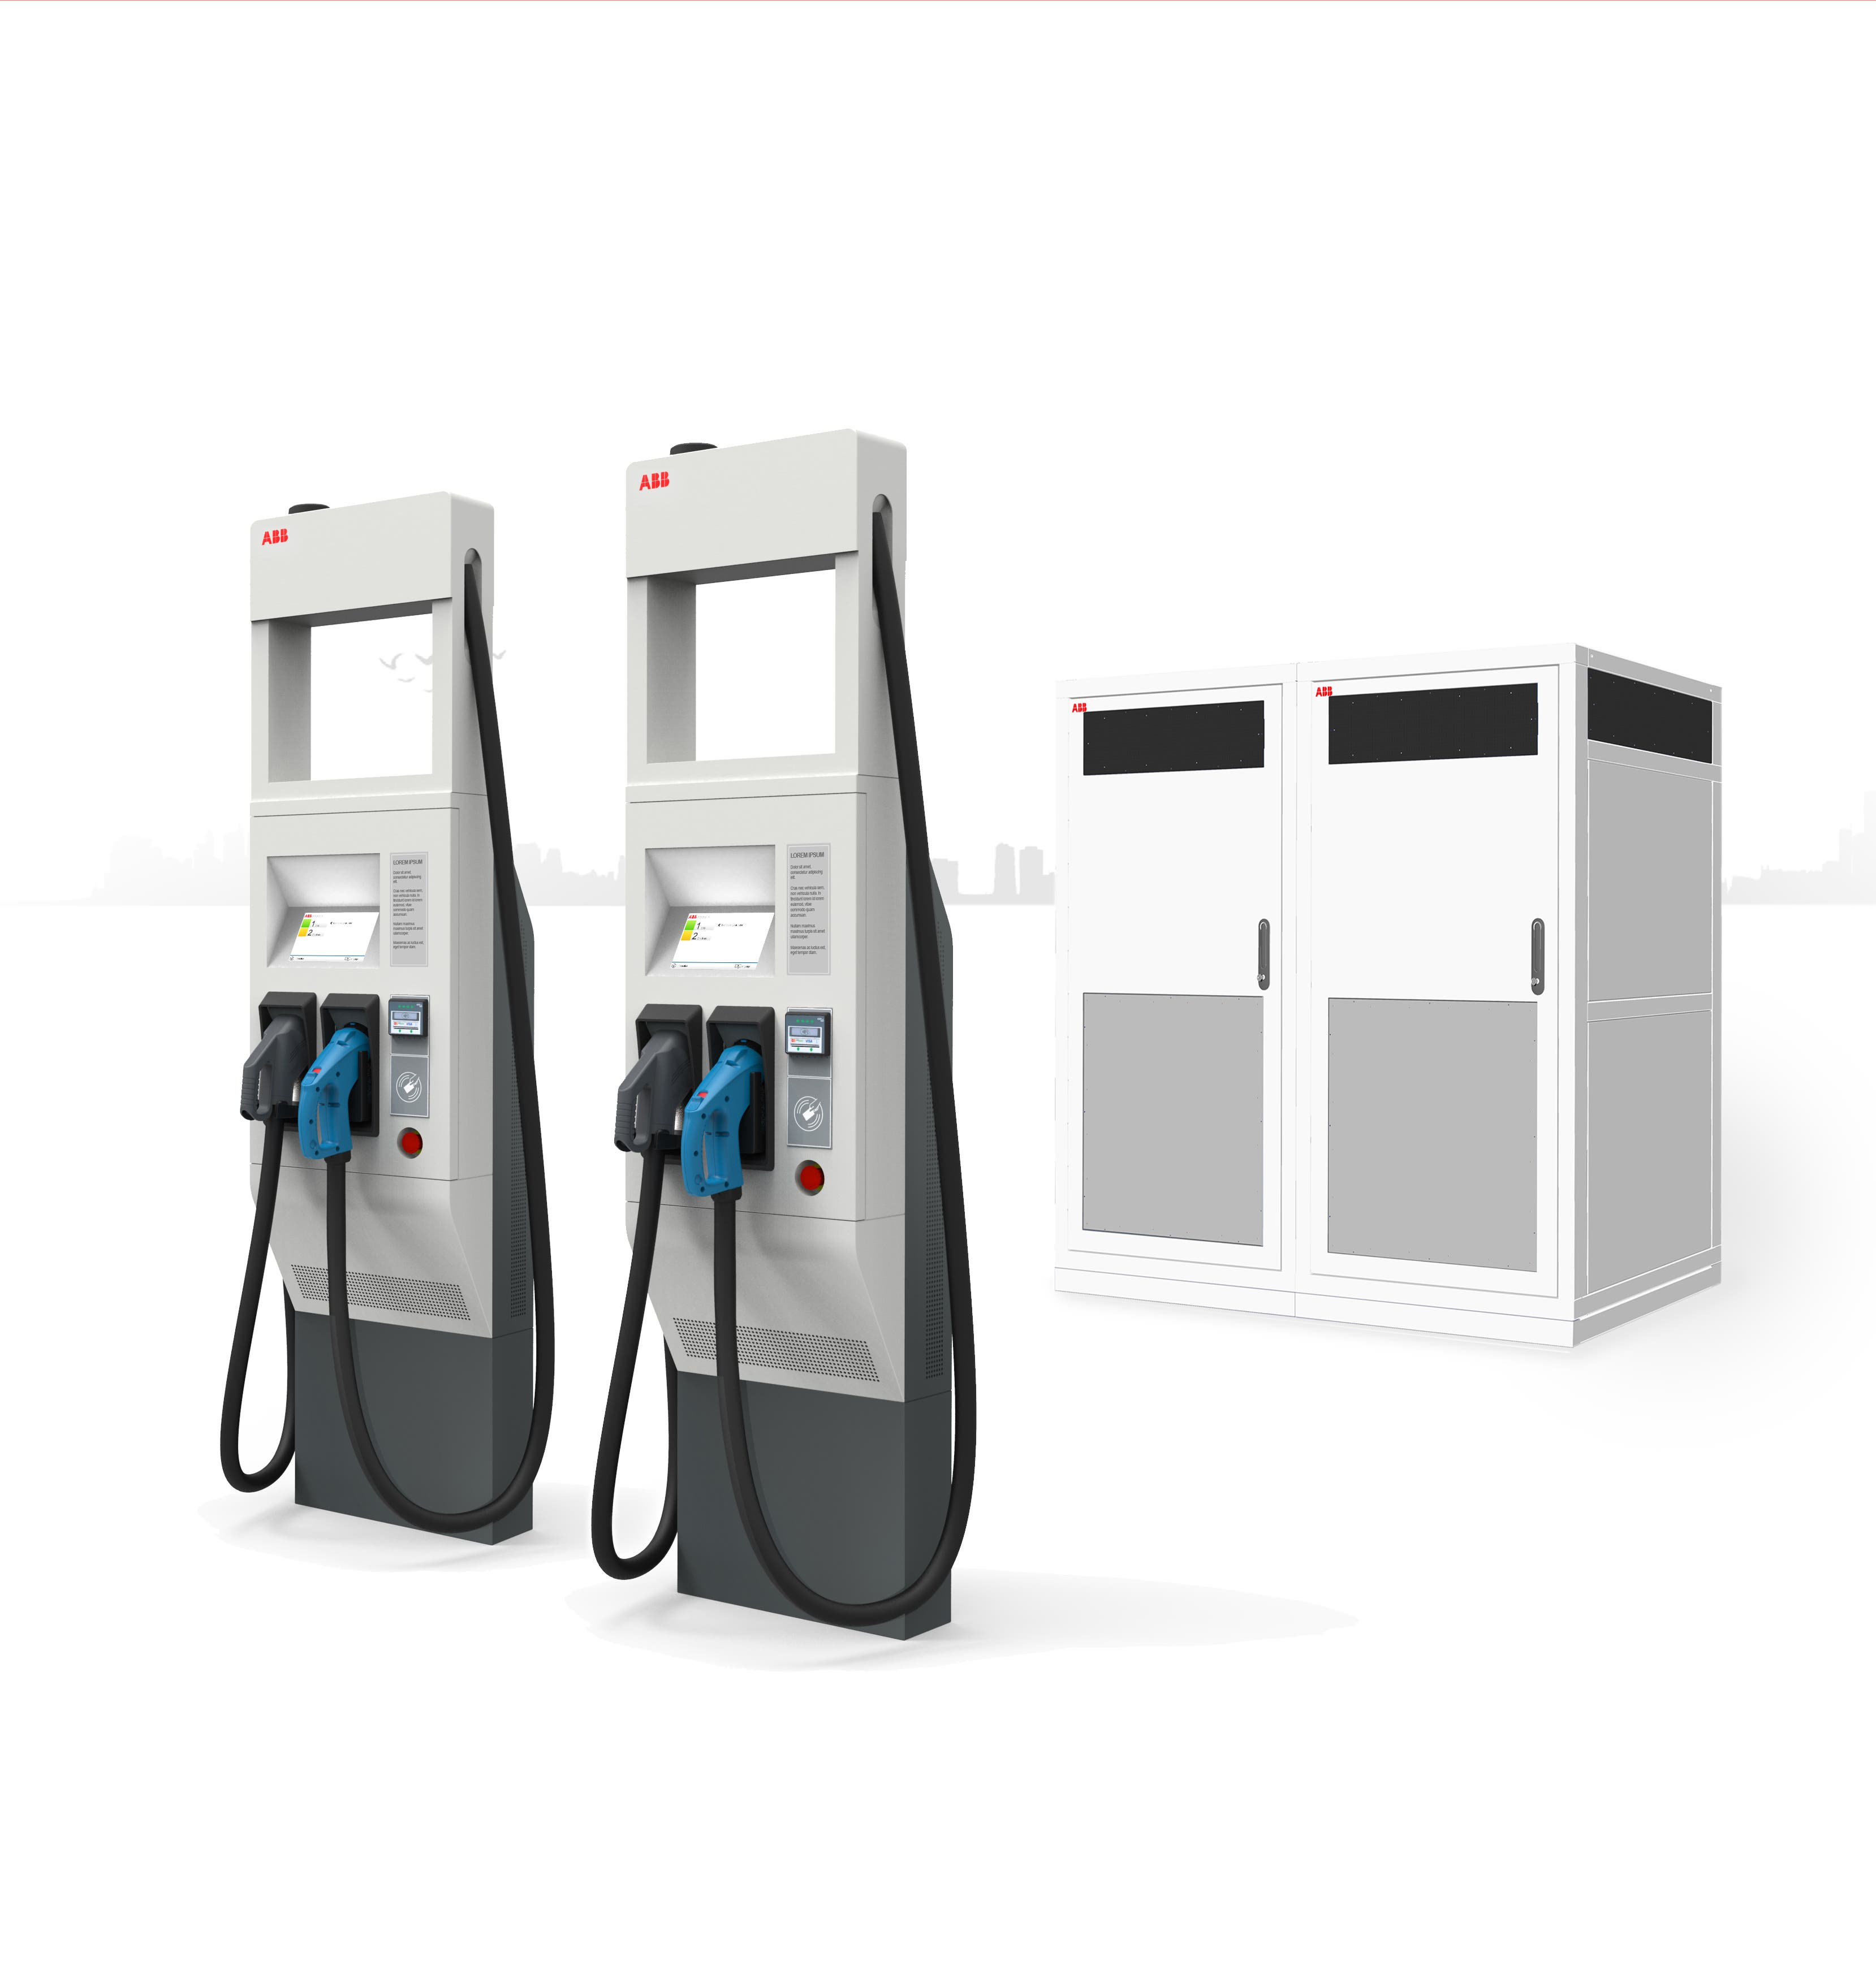 Superfast Charging For Big Auto Arrives! New 150-350 kW ...